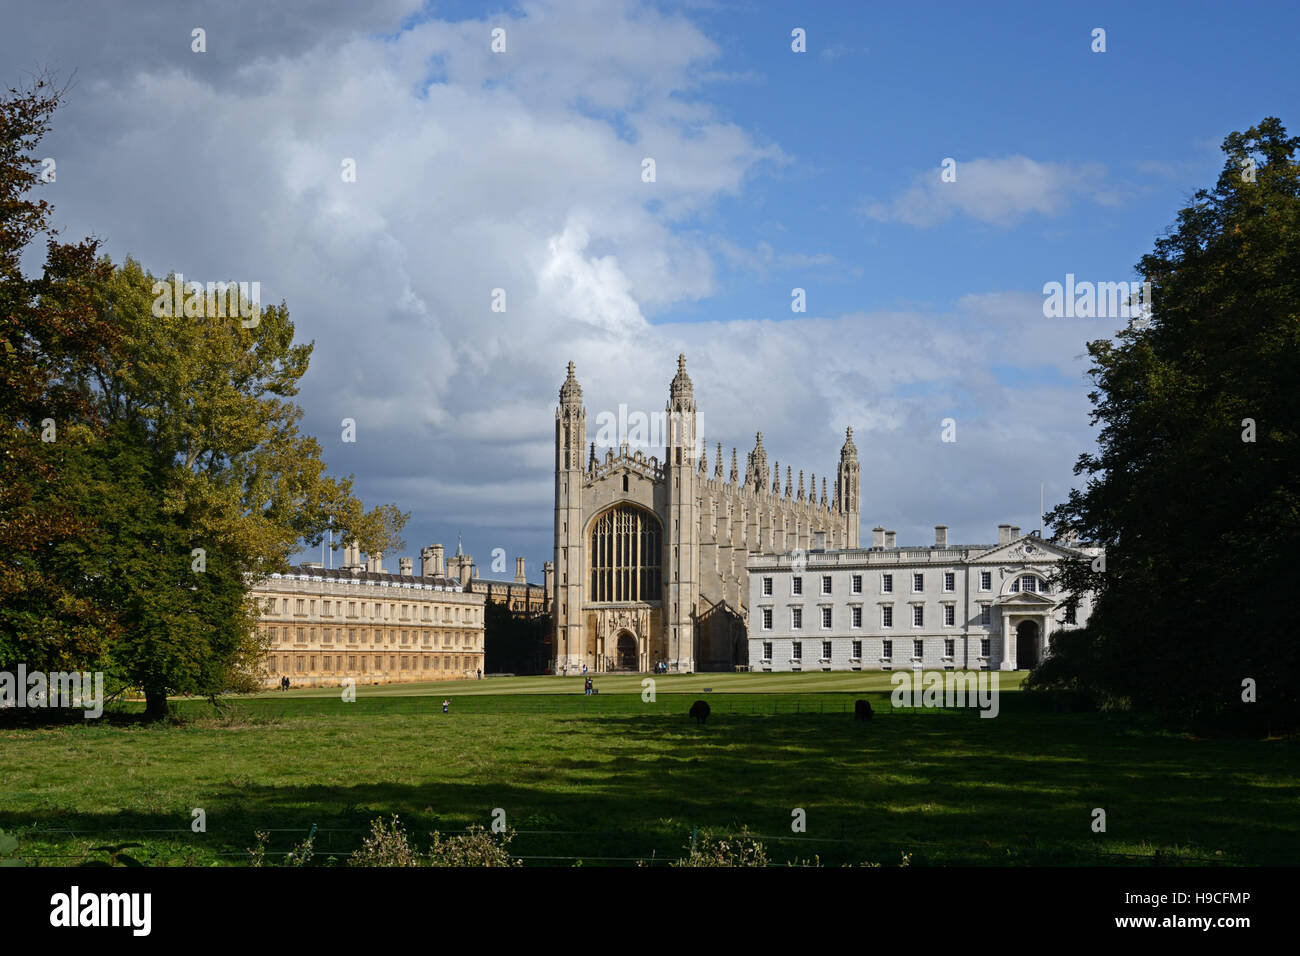 Lovely light on King's College, Cambridge, England. - Stock Image